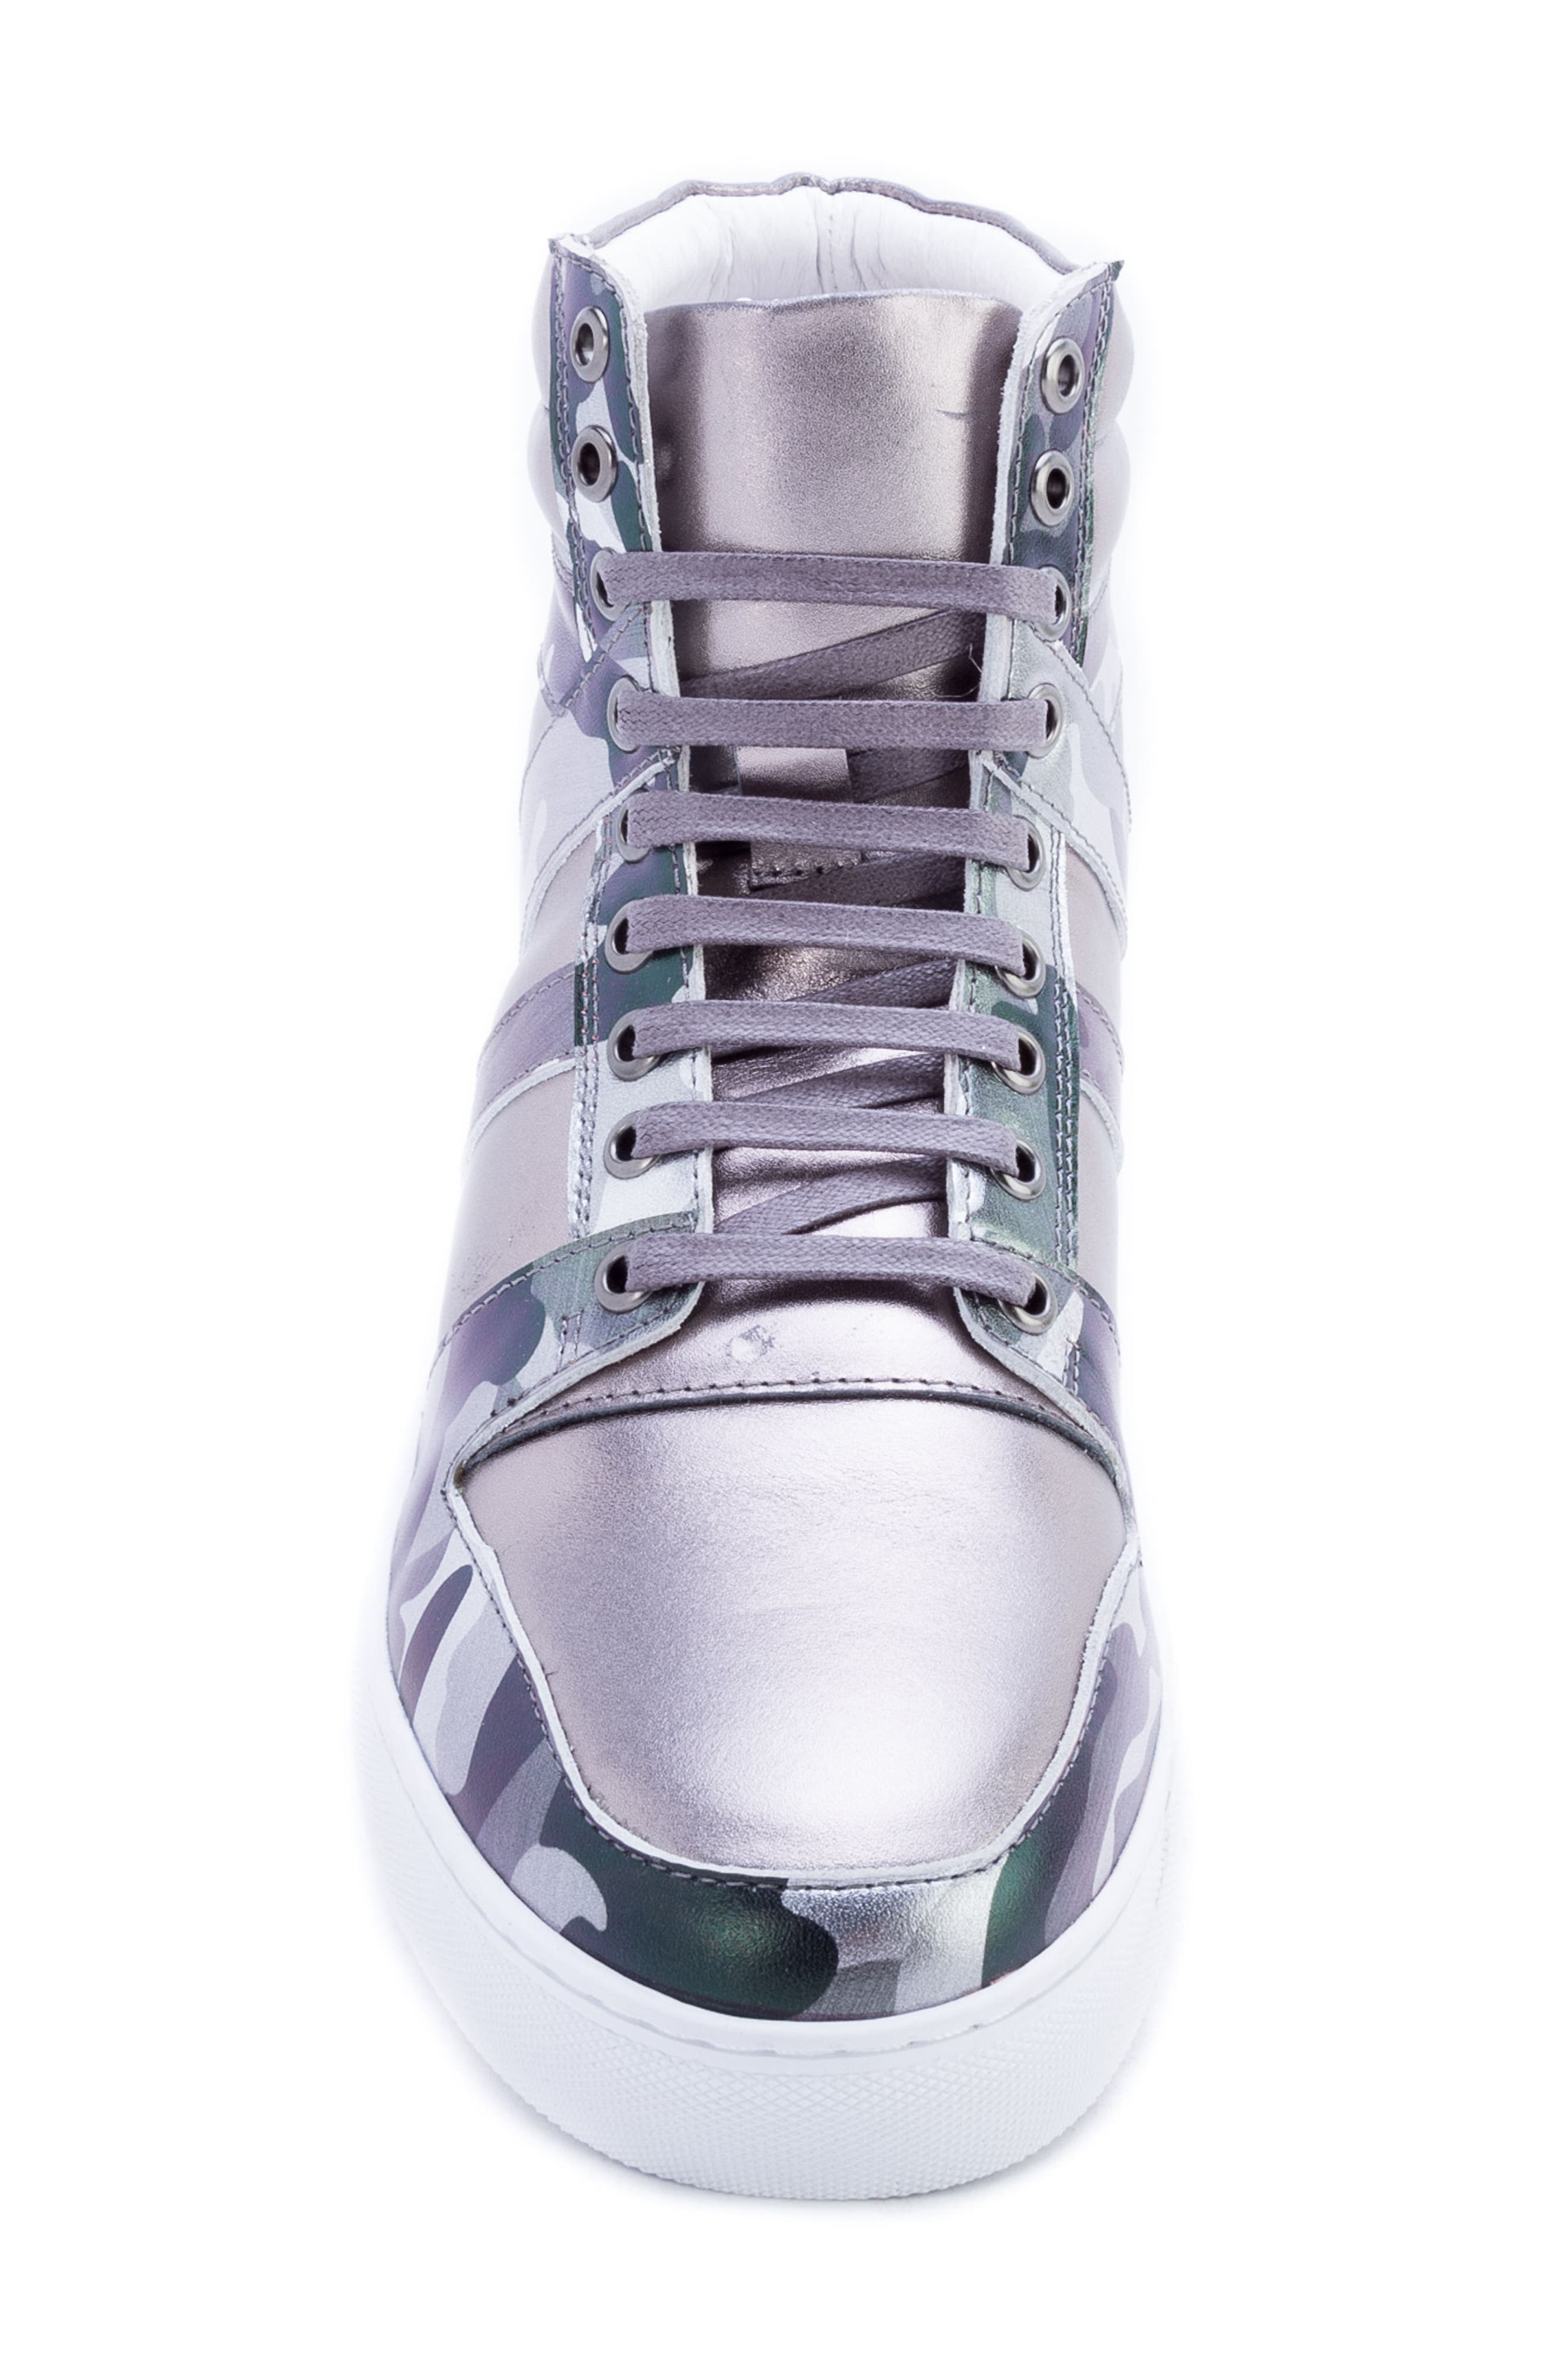 Badgley Mischka Sutherland Sneaker,                             Alternate thumbnail 5, color,                             GREY LEATHER